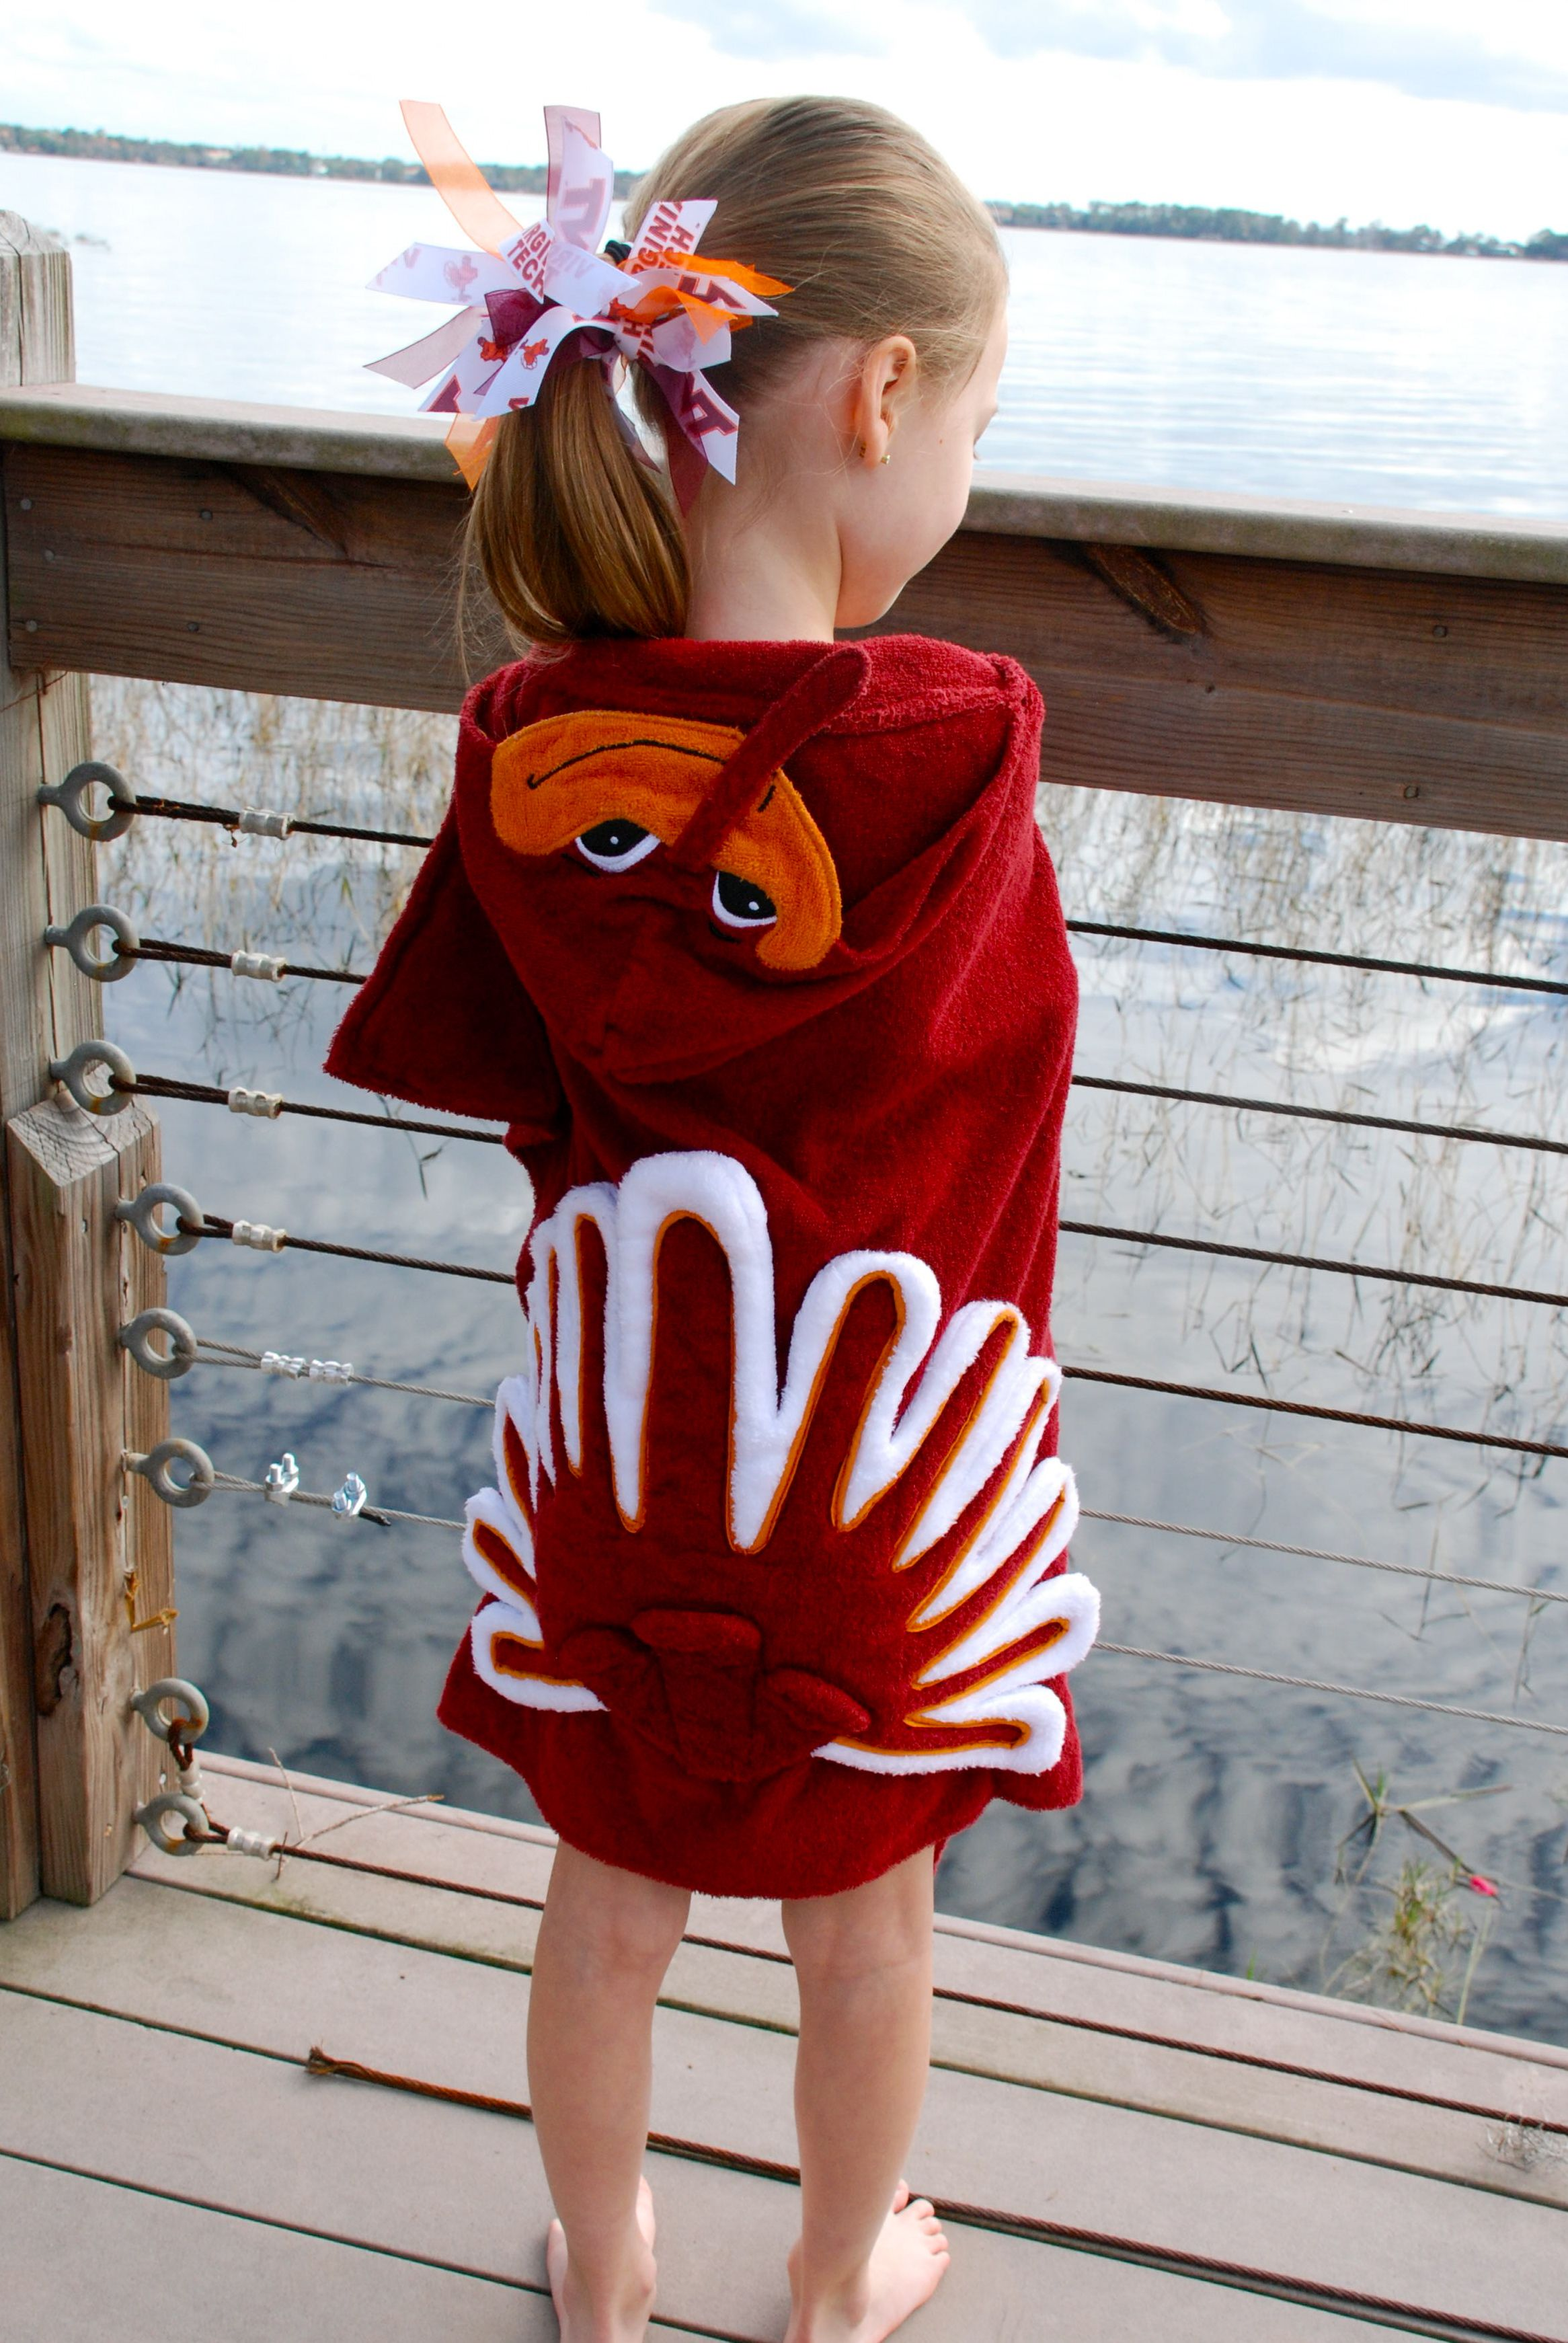 LOVE IT Virginia Tech Hokie Bird Hooded Towel available at